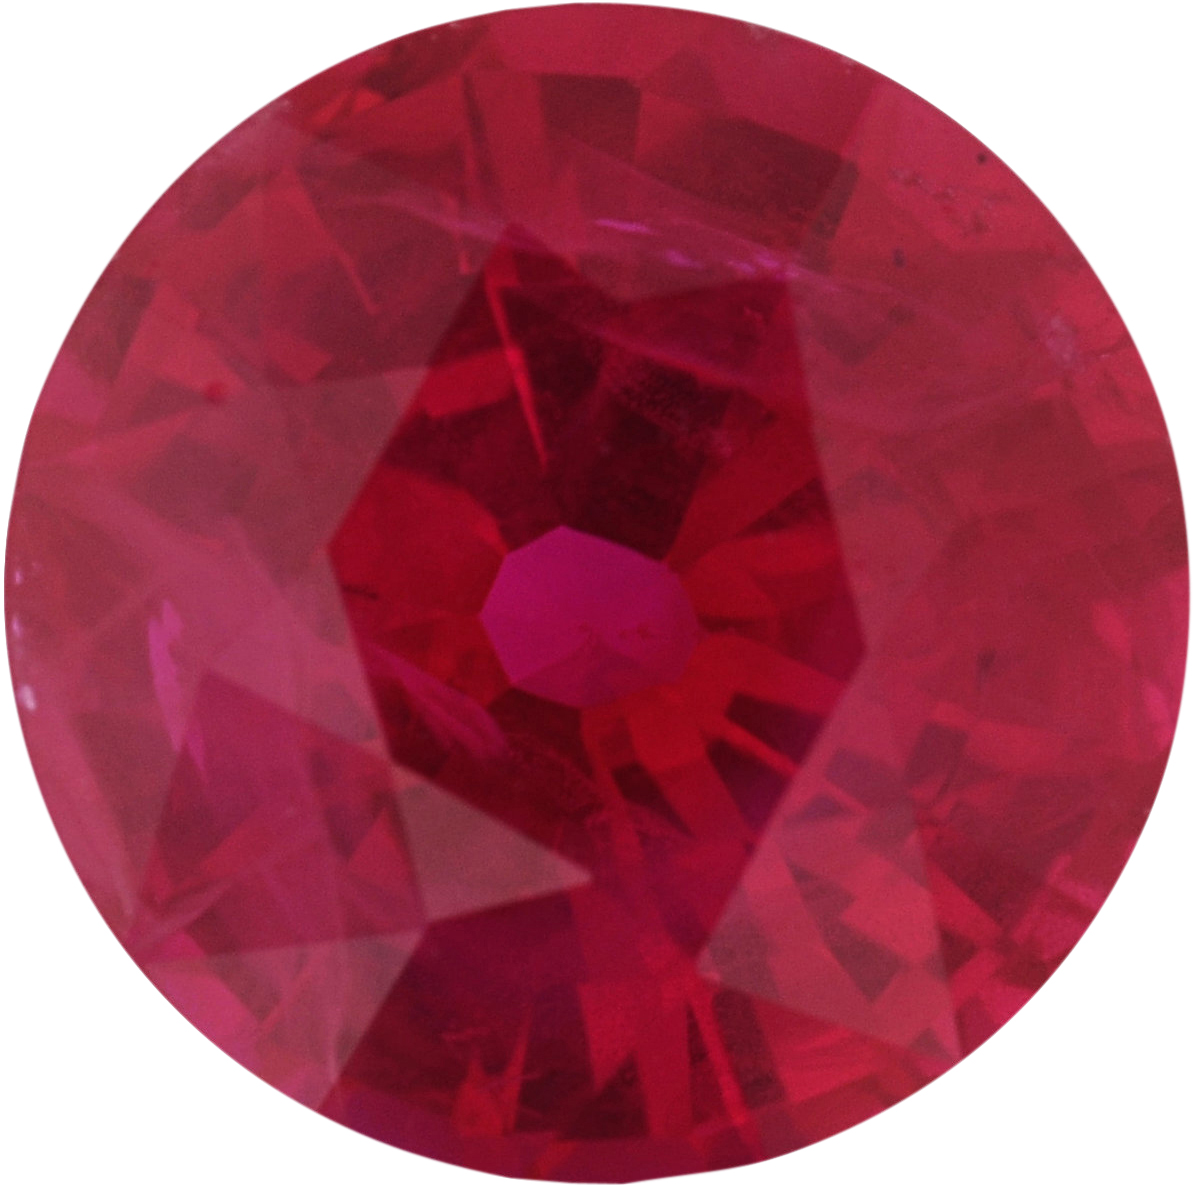 6.19 mm, Ruby Loose Gemstone in Round Cut, 1.11 carats